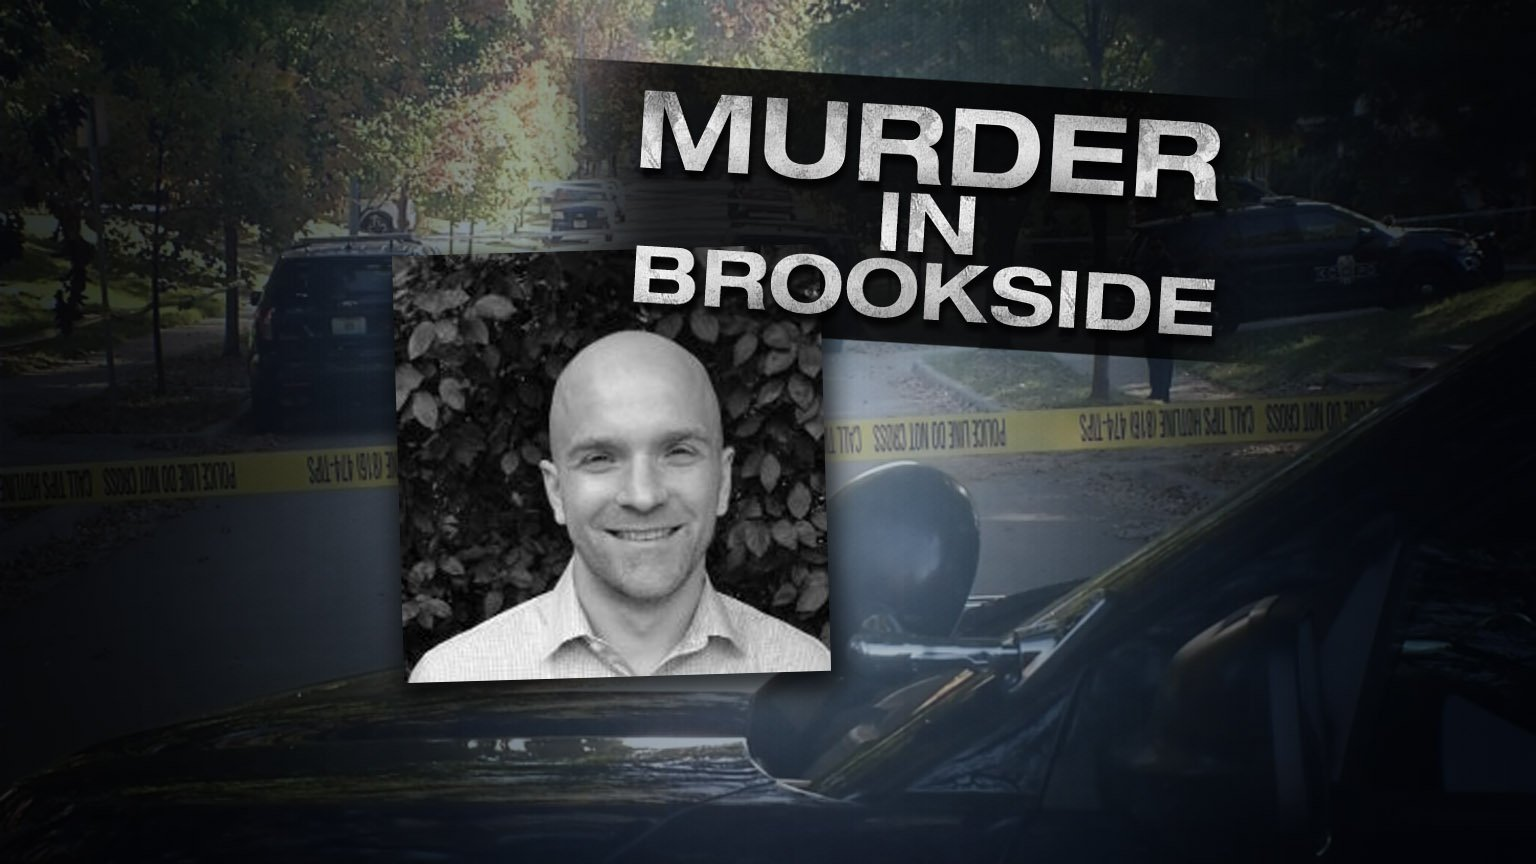 Van associated with Wednesday's murder of KC attorney registered to recent defendant